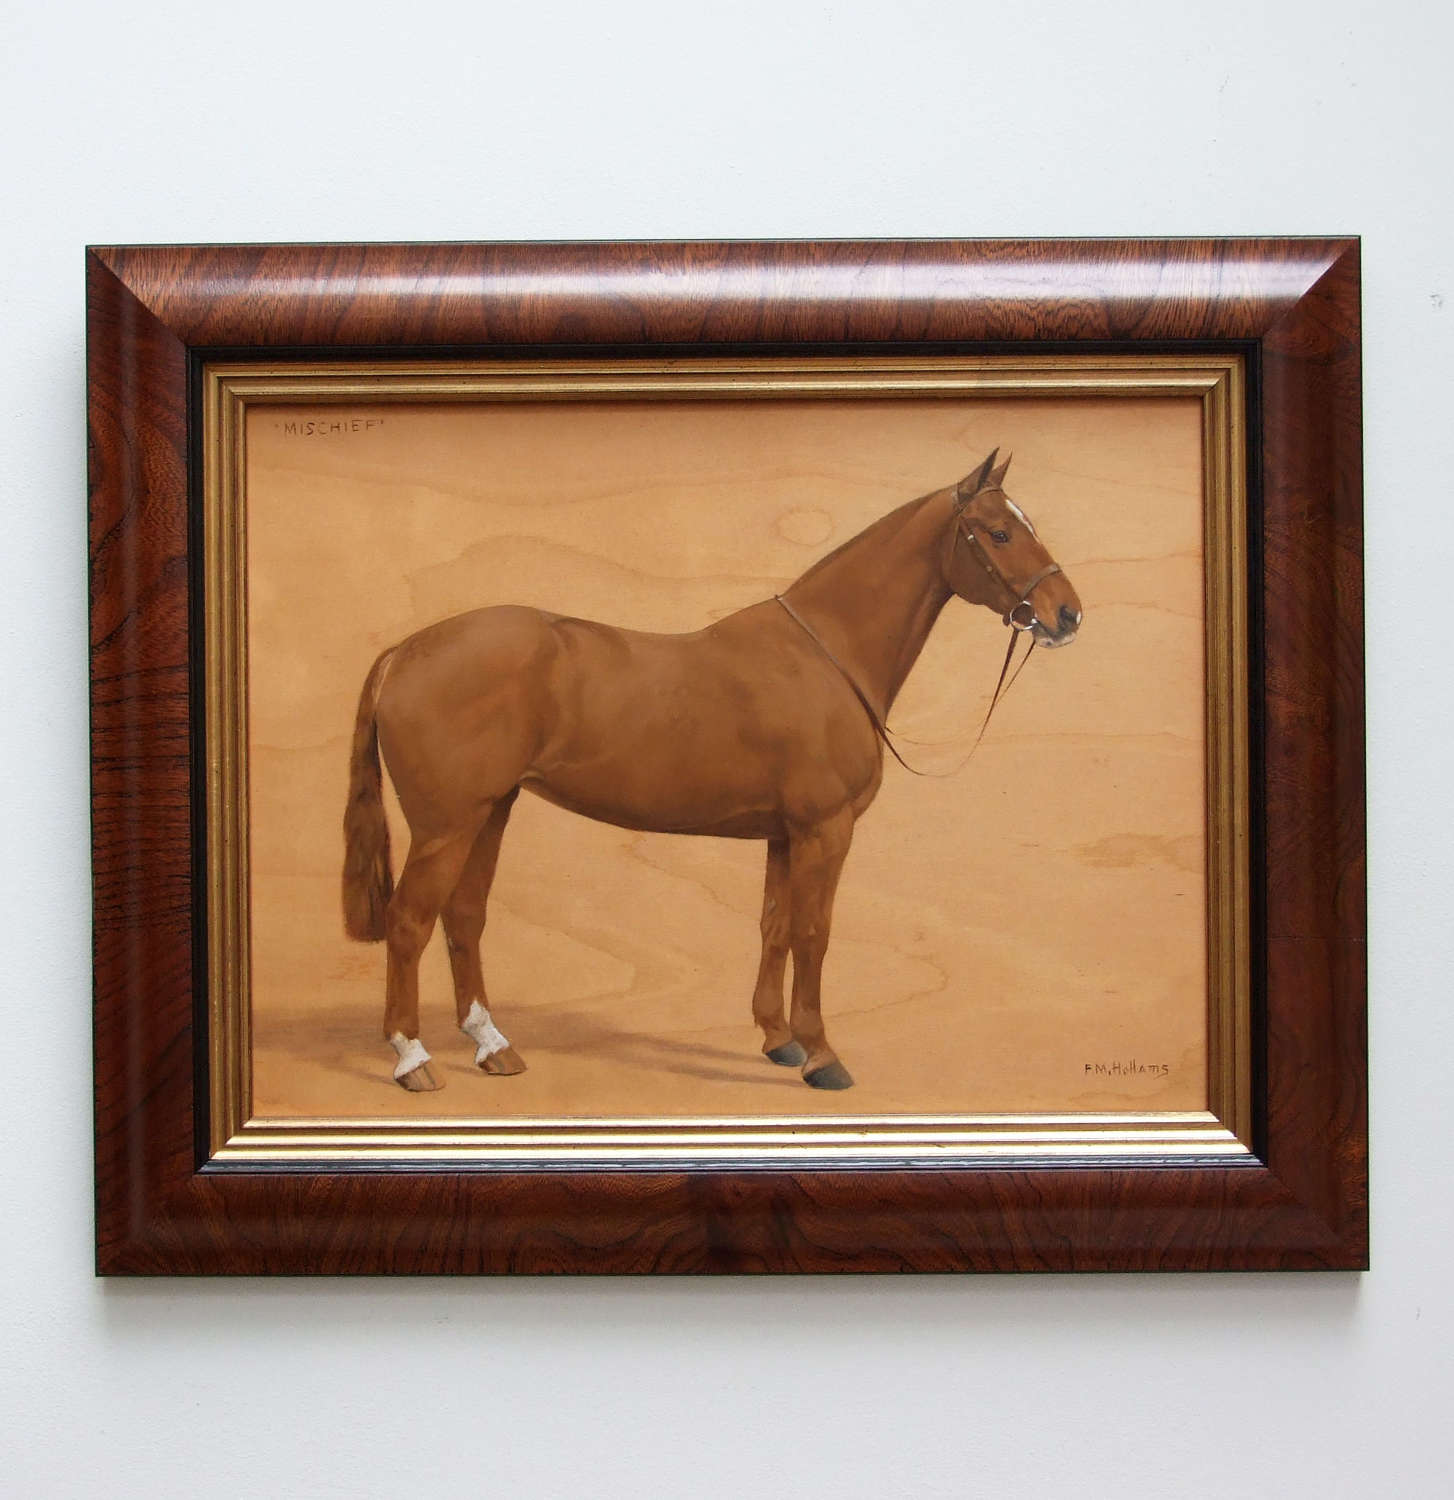 Fine horse portrait by Frances Mabel Hollams